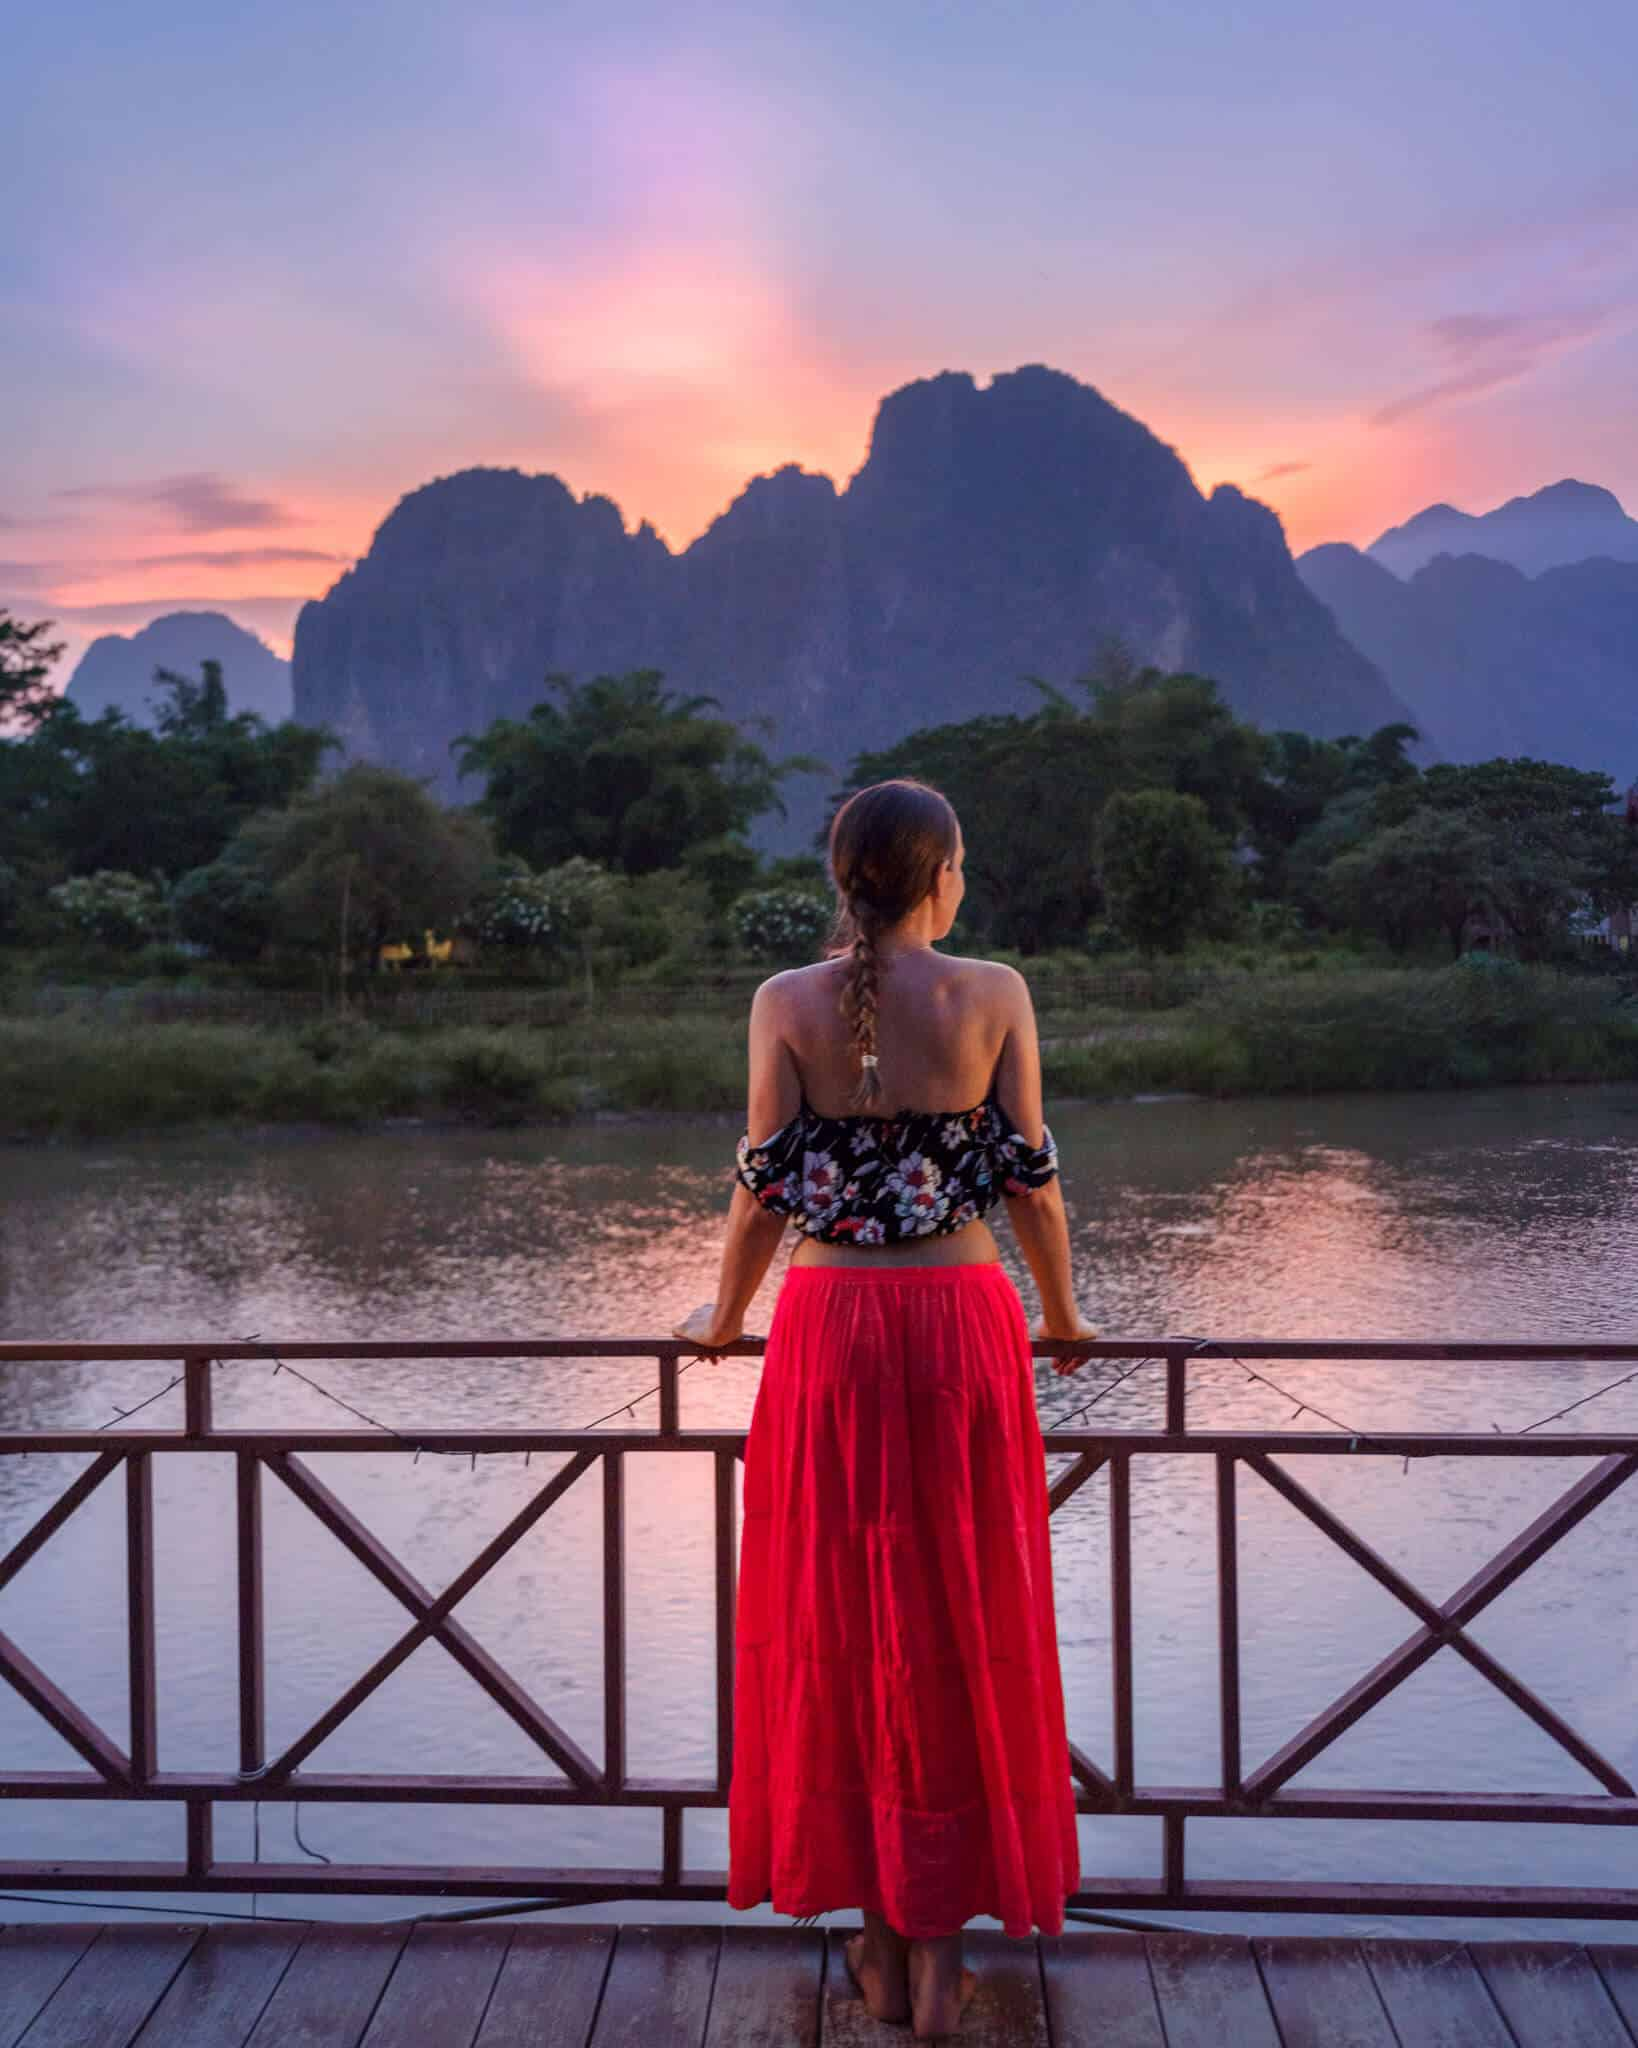 Sunset at Silver Naga Resort Vang Vieng Photos